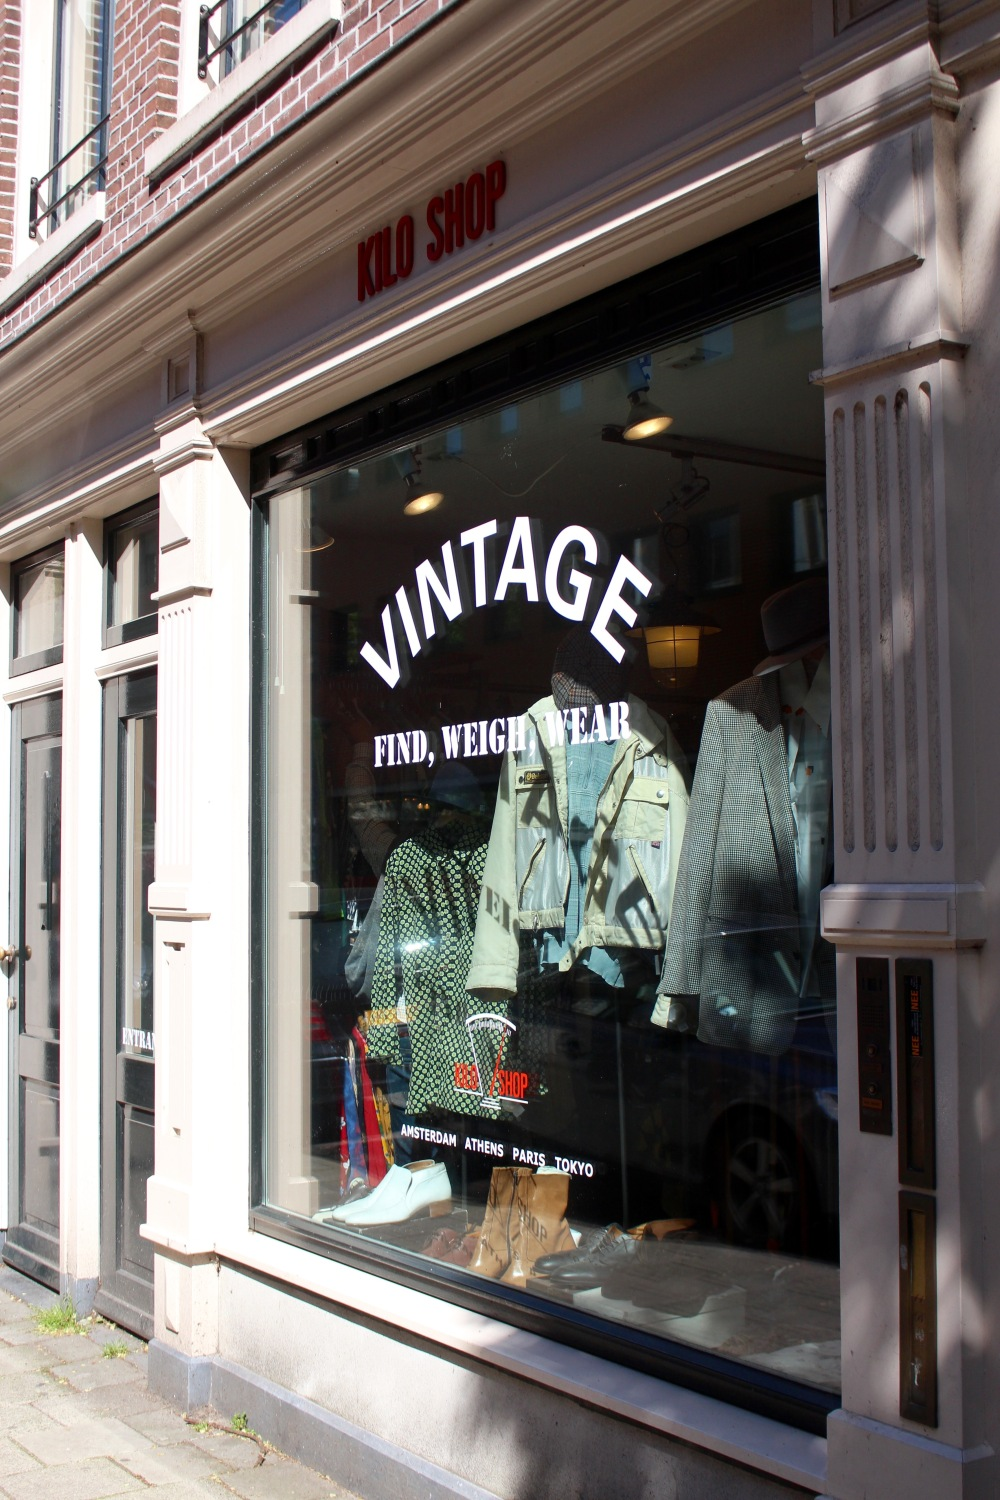 Retro   Chic is perhaps the most elegant and exquisite vintage boutique I  have been visiting in Amsterdam. The store itself resembles a showroom from  the ... e3ad21f3378